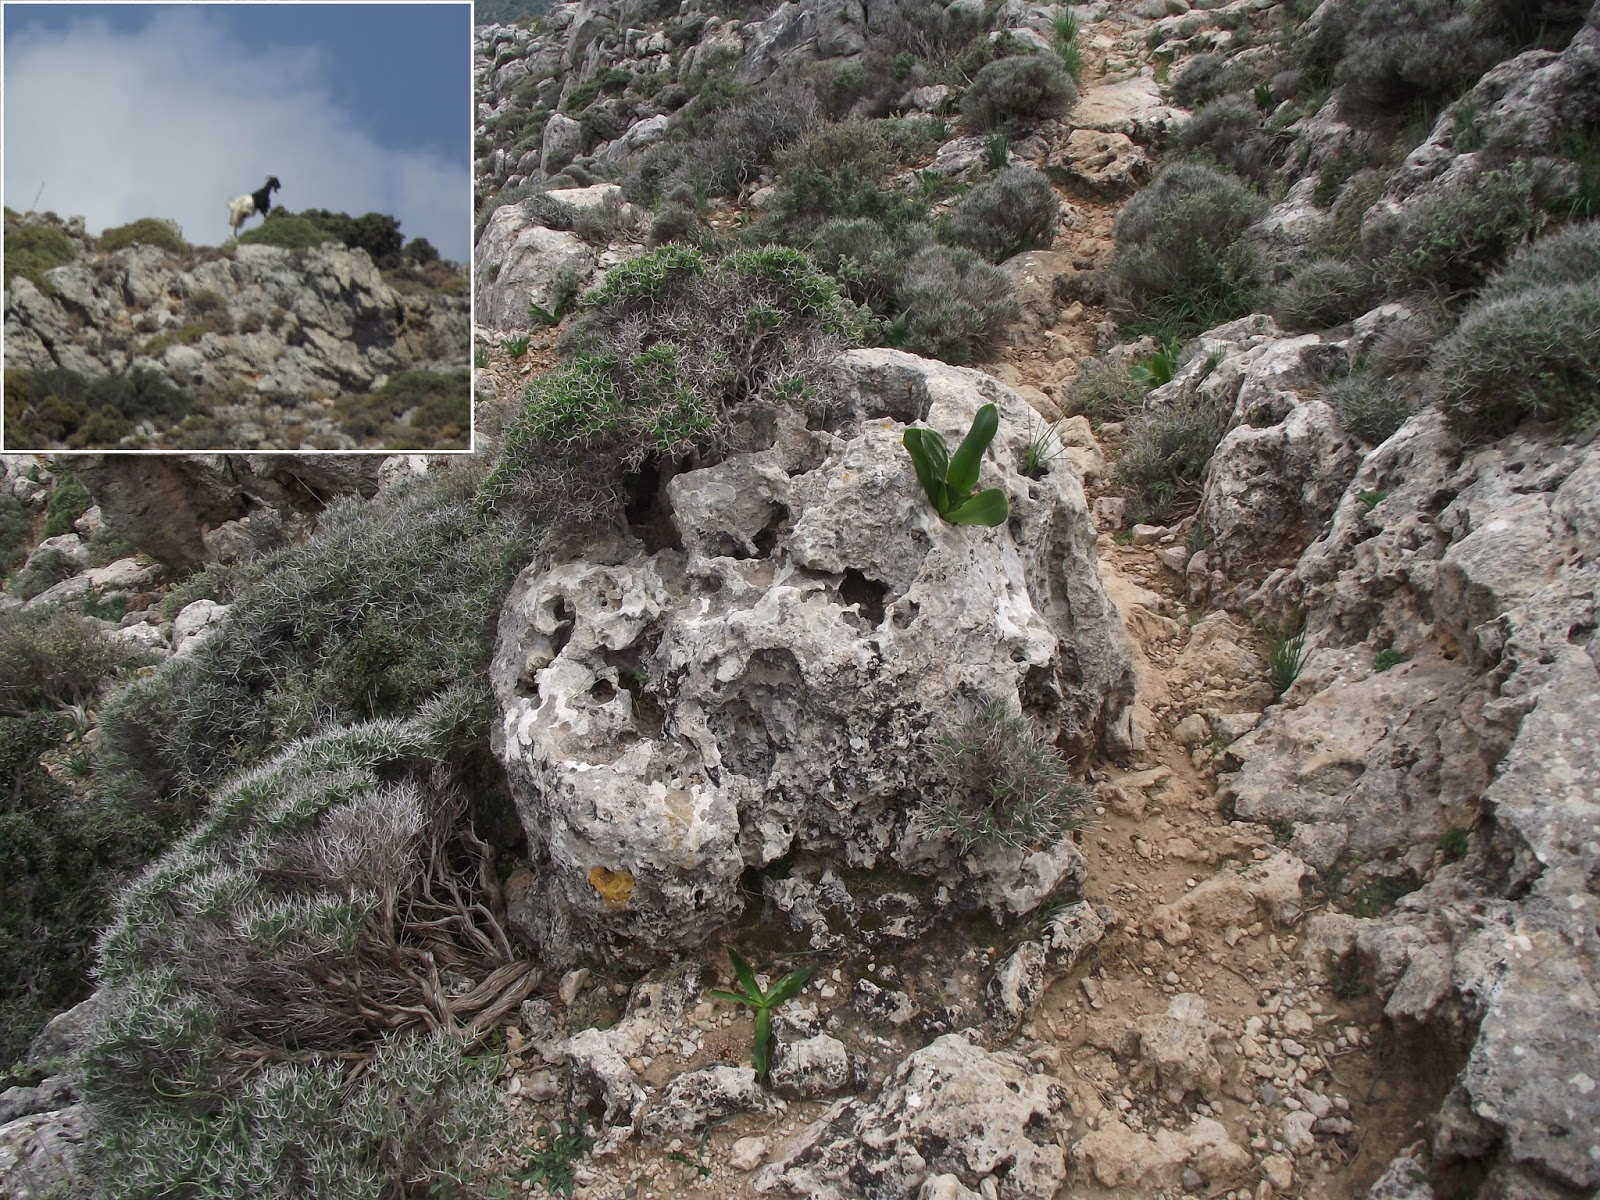 Crete Nature Blog The Cave Of The Two Toned Goat